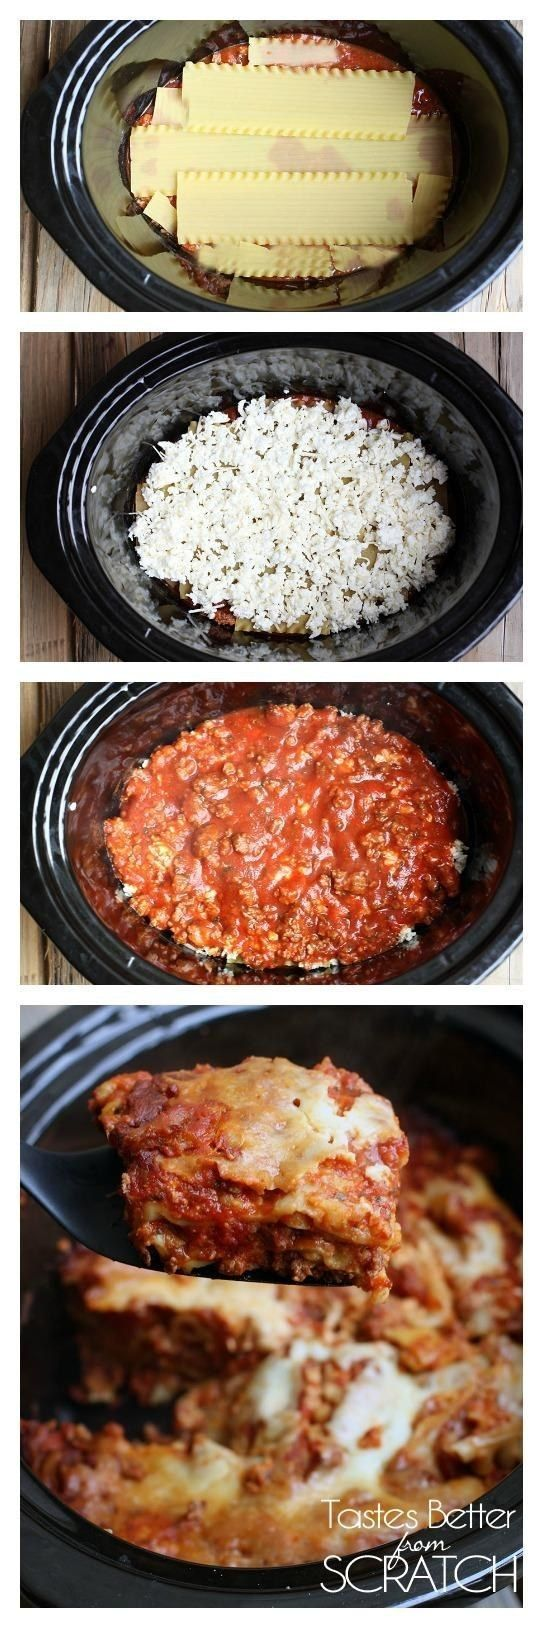 Slow Cooker Lasagna | Here Are 19 Insanely Popular Crock Pot Recipes